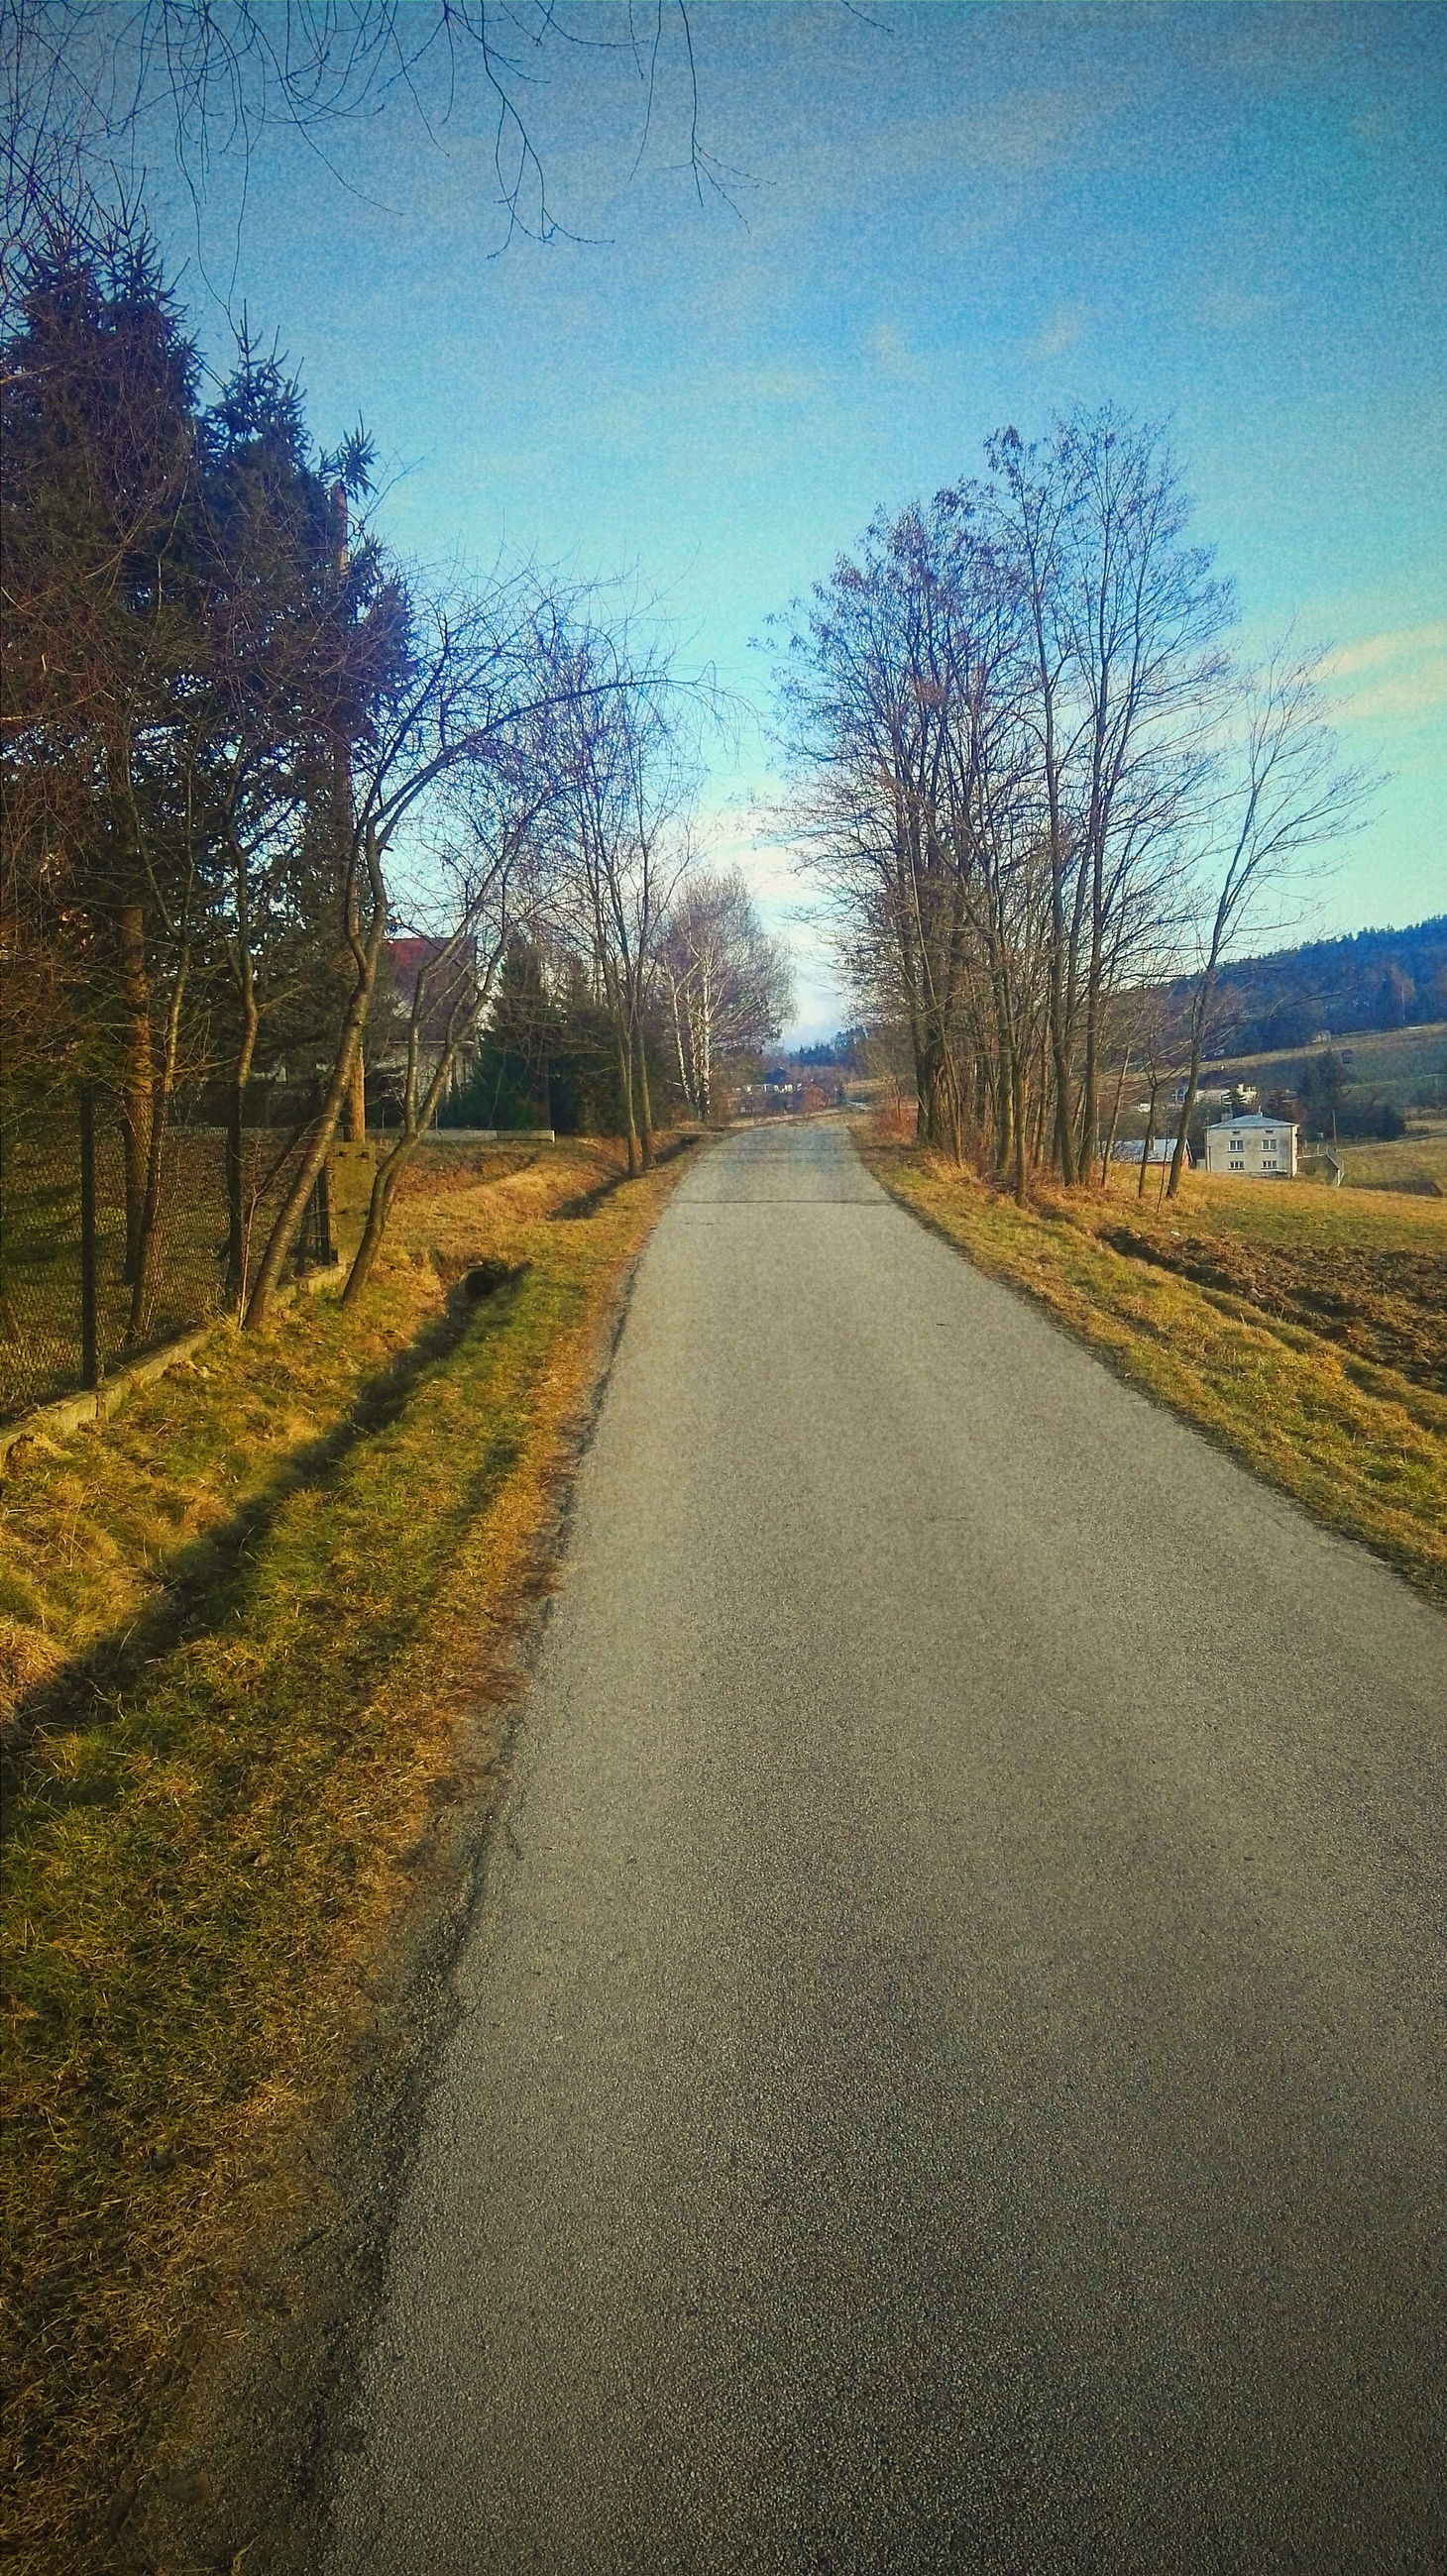 the way forward, diminishing perspective, vanishing point, road, tree, transportation, tranquility, tranquil scene, sky, country road, empty road, clear sky, surface level, landscape, nature, long, asphalt, field, bare tree, road marking